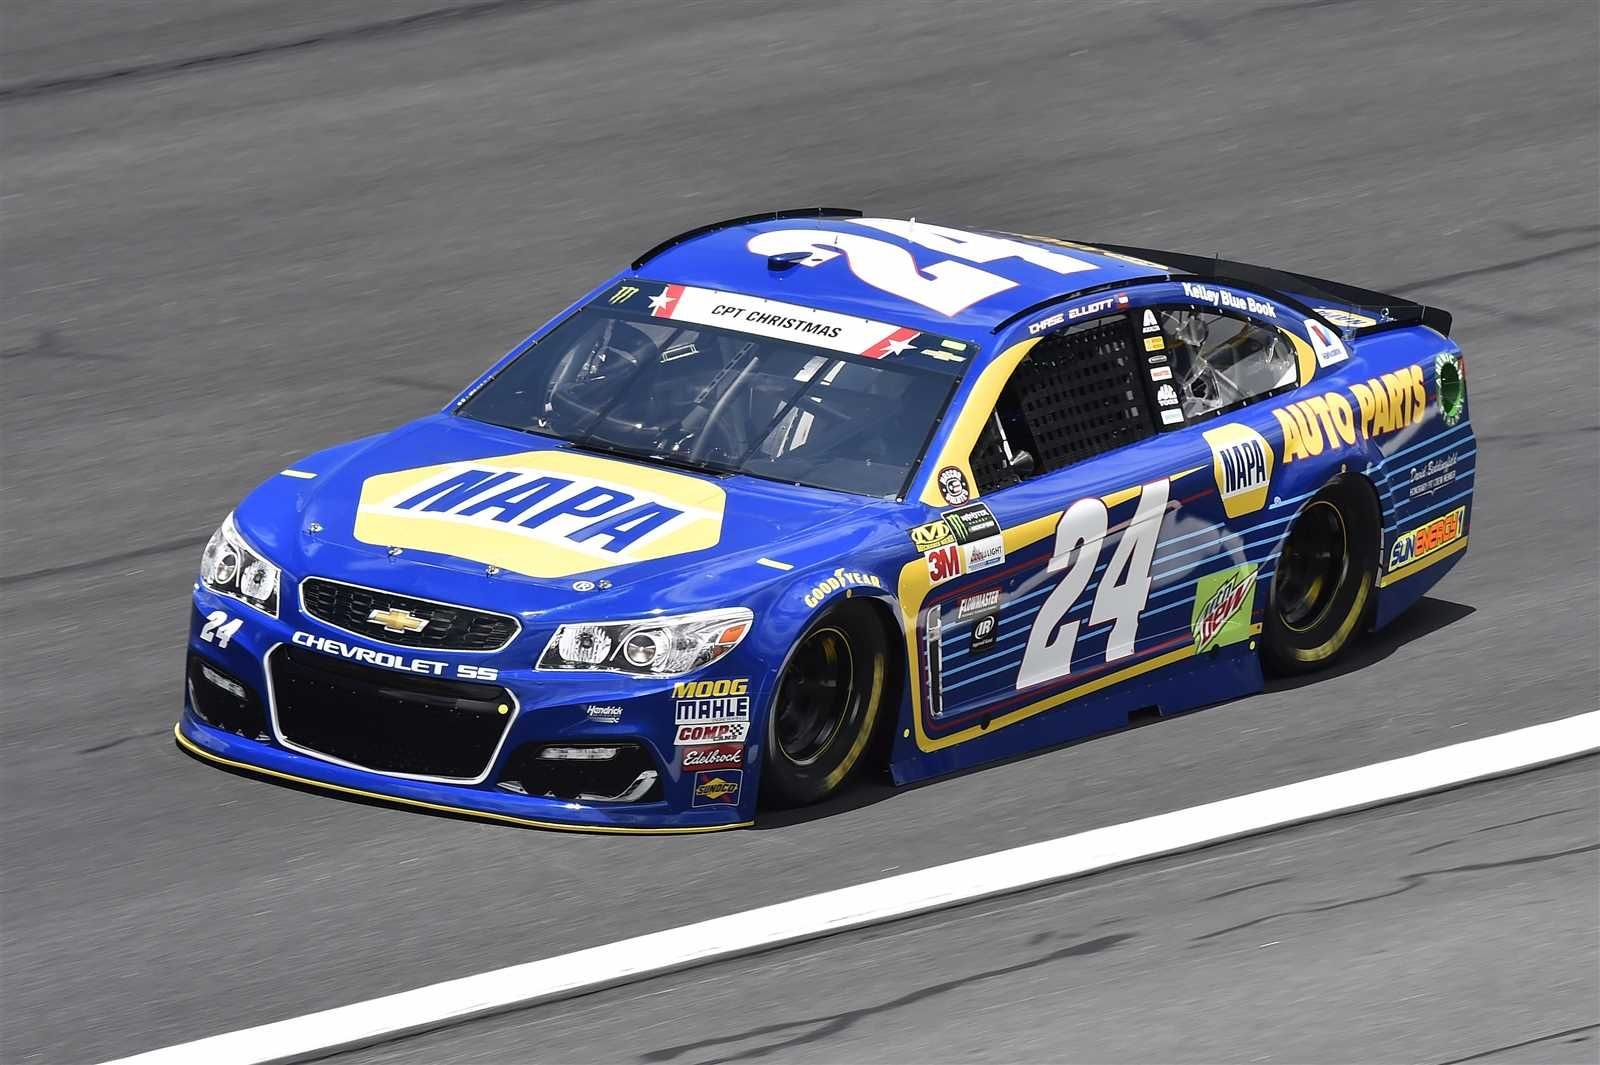 Coca-Cola 600  May 28, 2017  (Servicemember: CPT Todd Tyler Christmas) Chase Elliott will start third in the No. 24 Hendrick Motorsports Chevrolet.  Crew chief: Alan Gustafson  Spotter: Eddie D'Hondt  (Servicemember: CPT Todd Tyler Christmas)